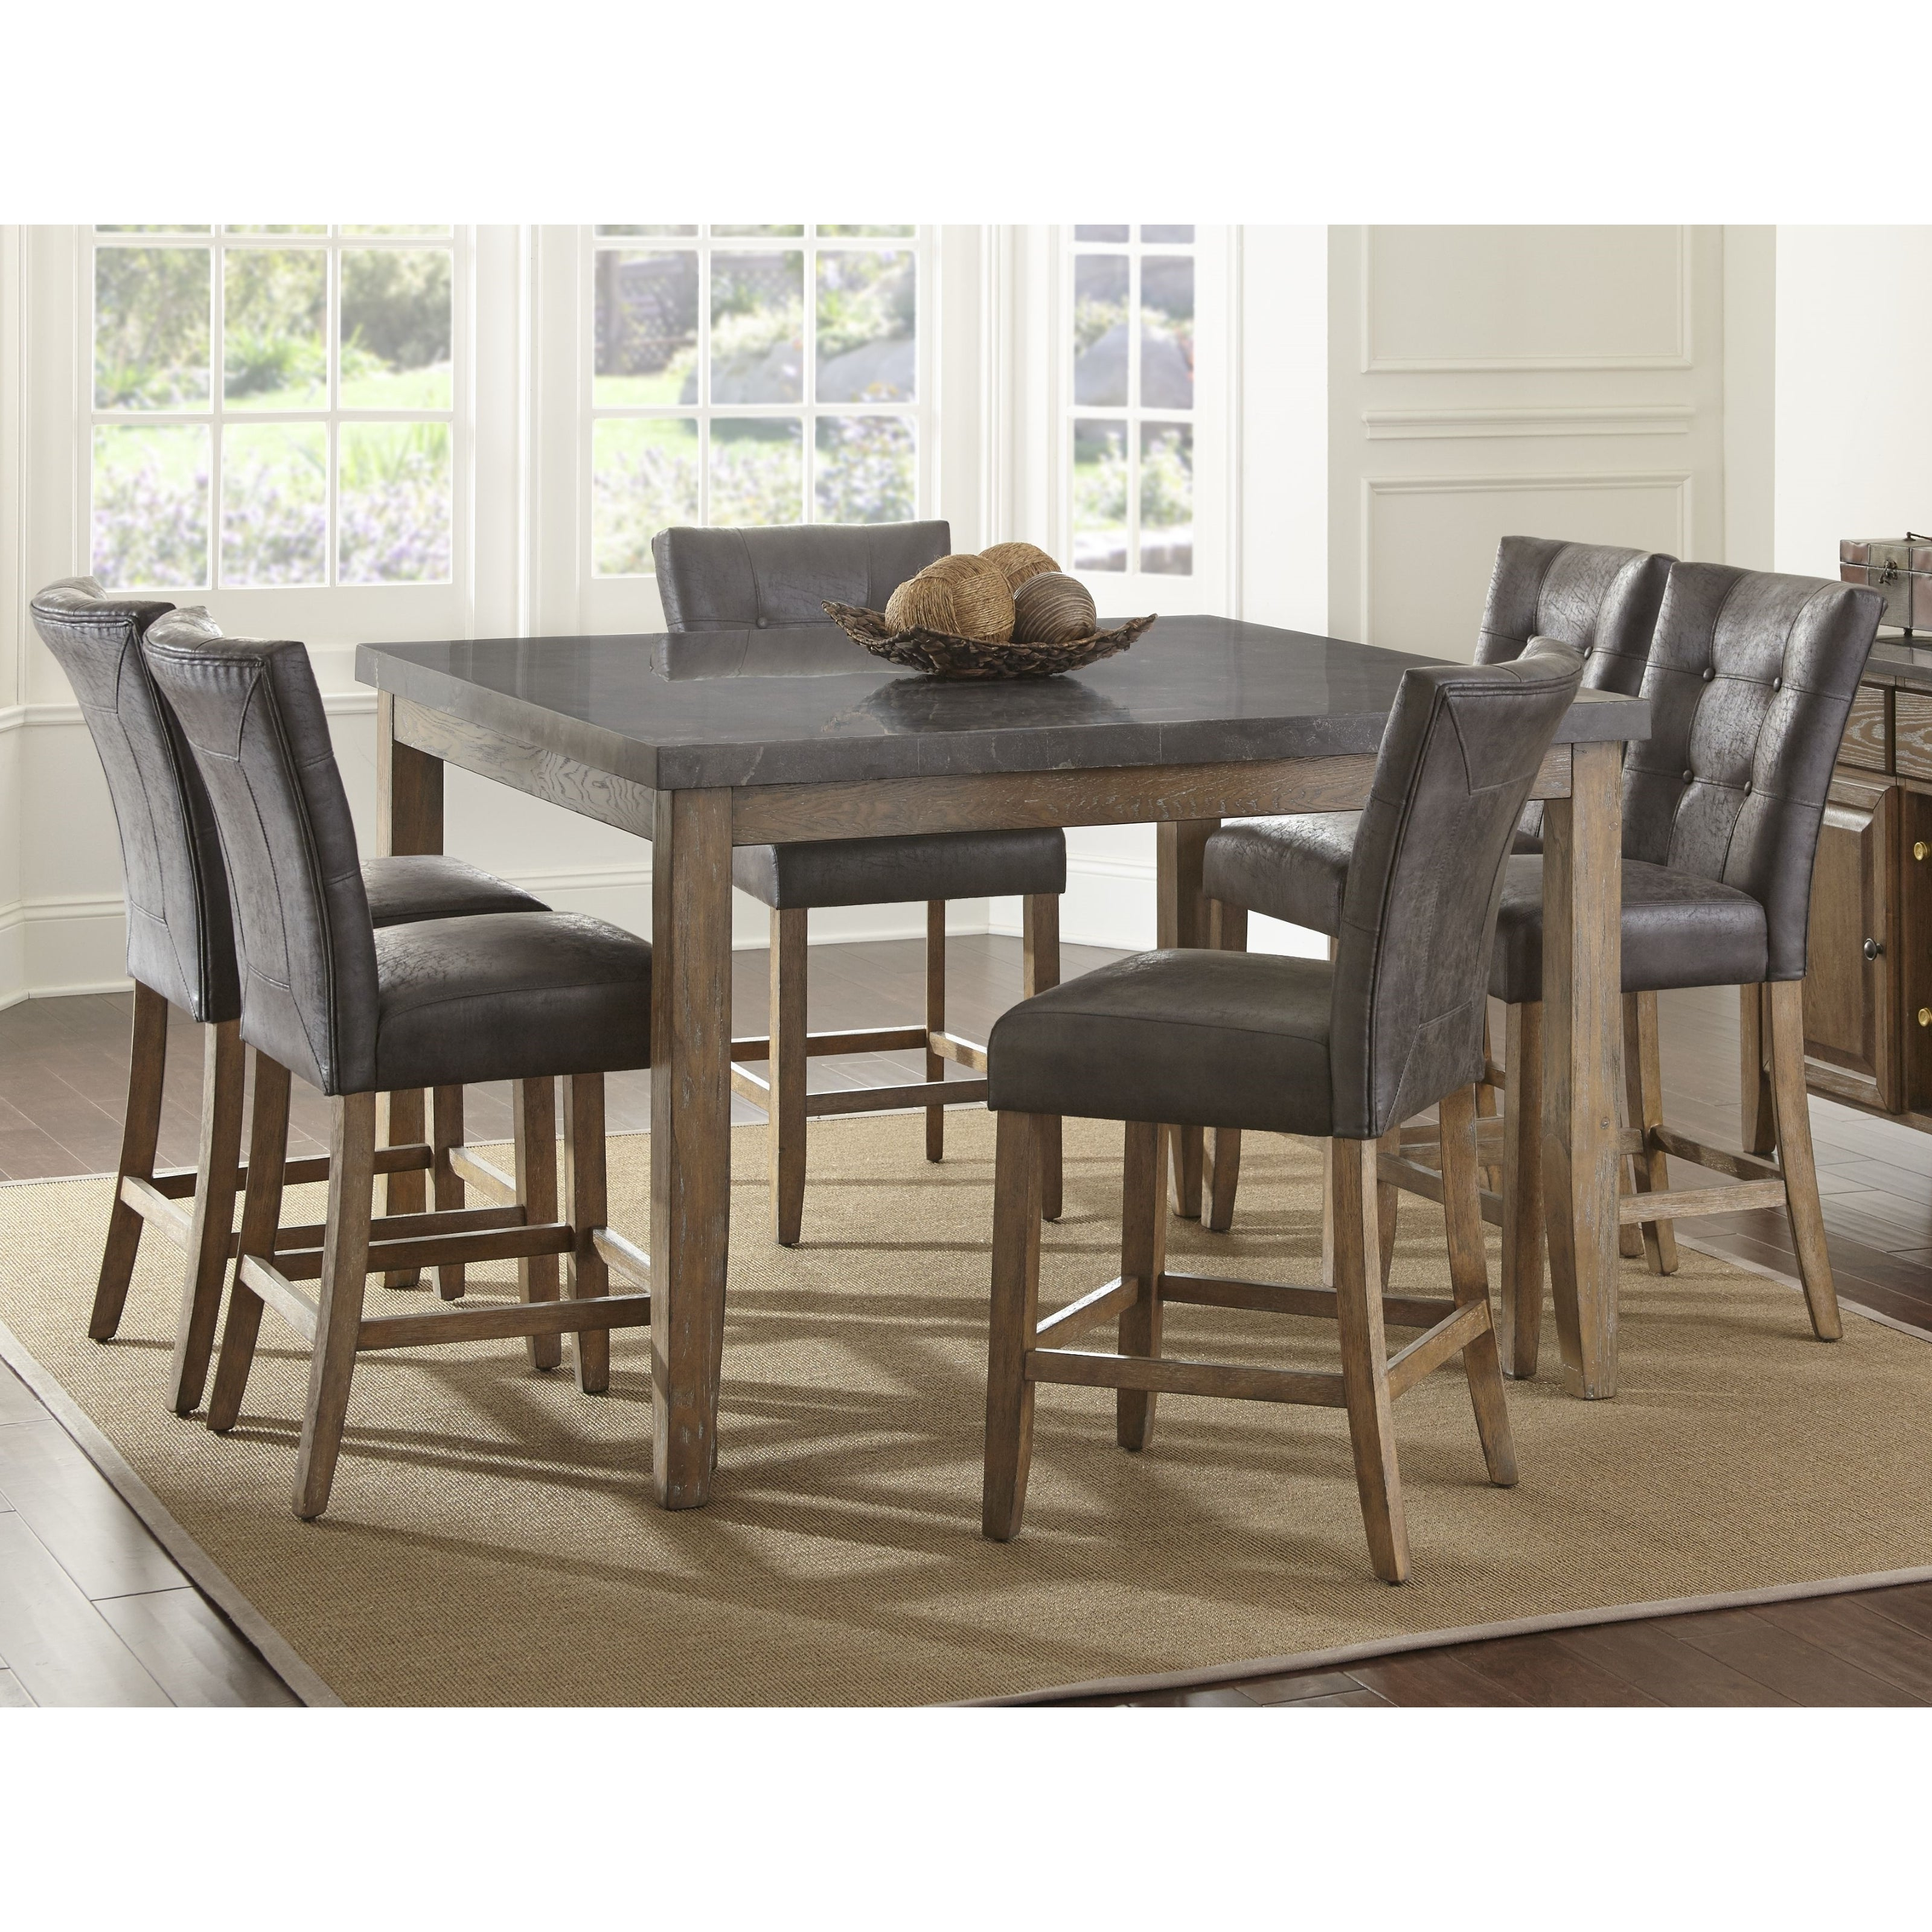 Most Popular Buy 5 Piece Sets Kitchen & Dining Room Sets Online At Overstock In West Hill Family Table 3 Piece Dining Sets (View 19 of 25)